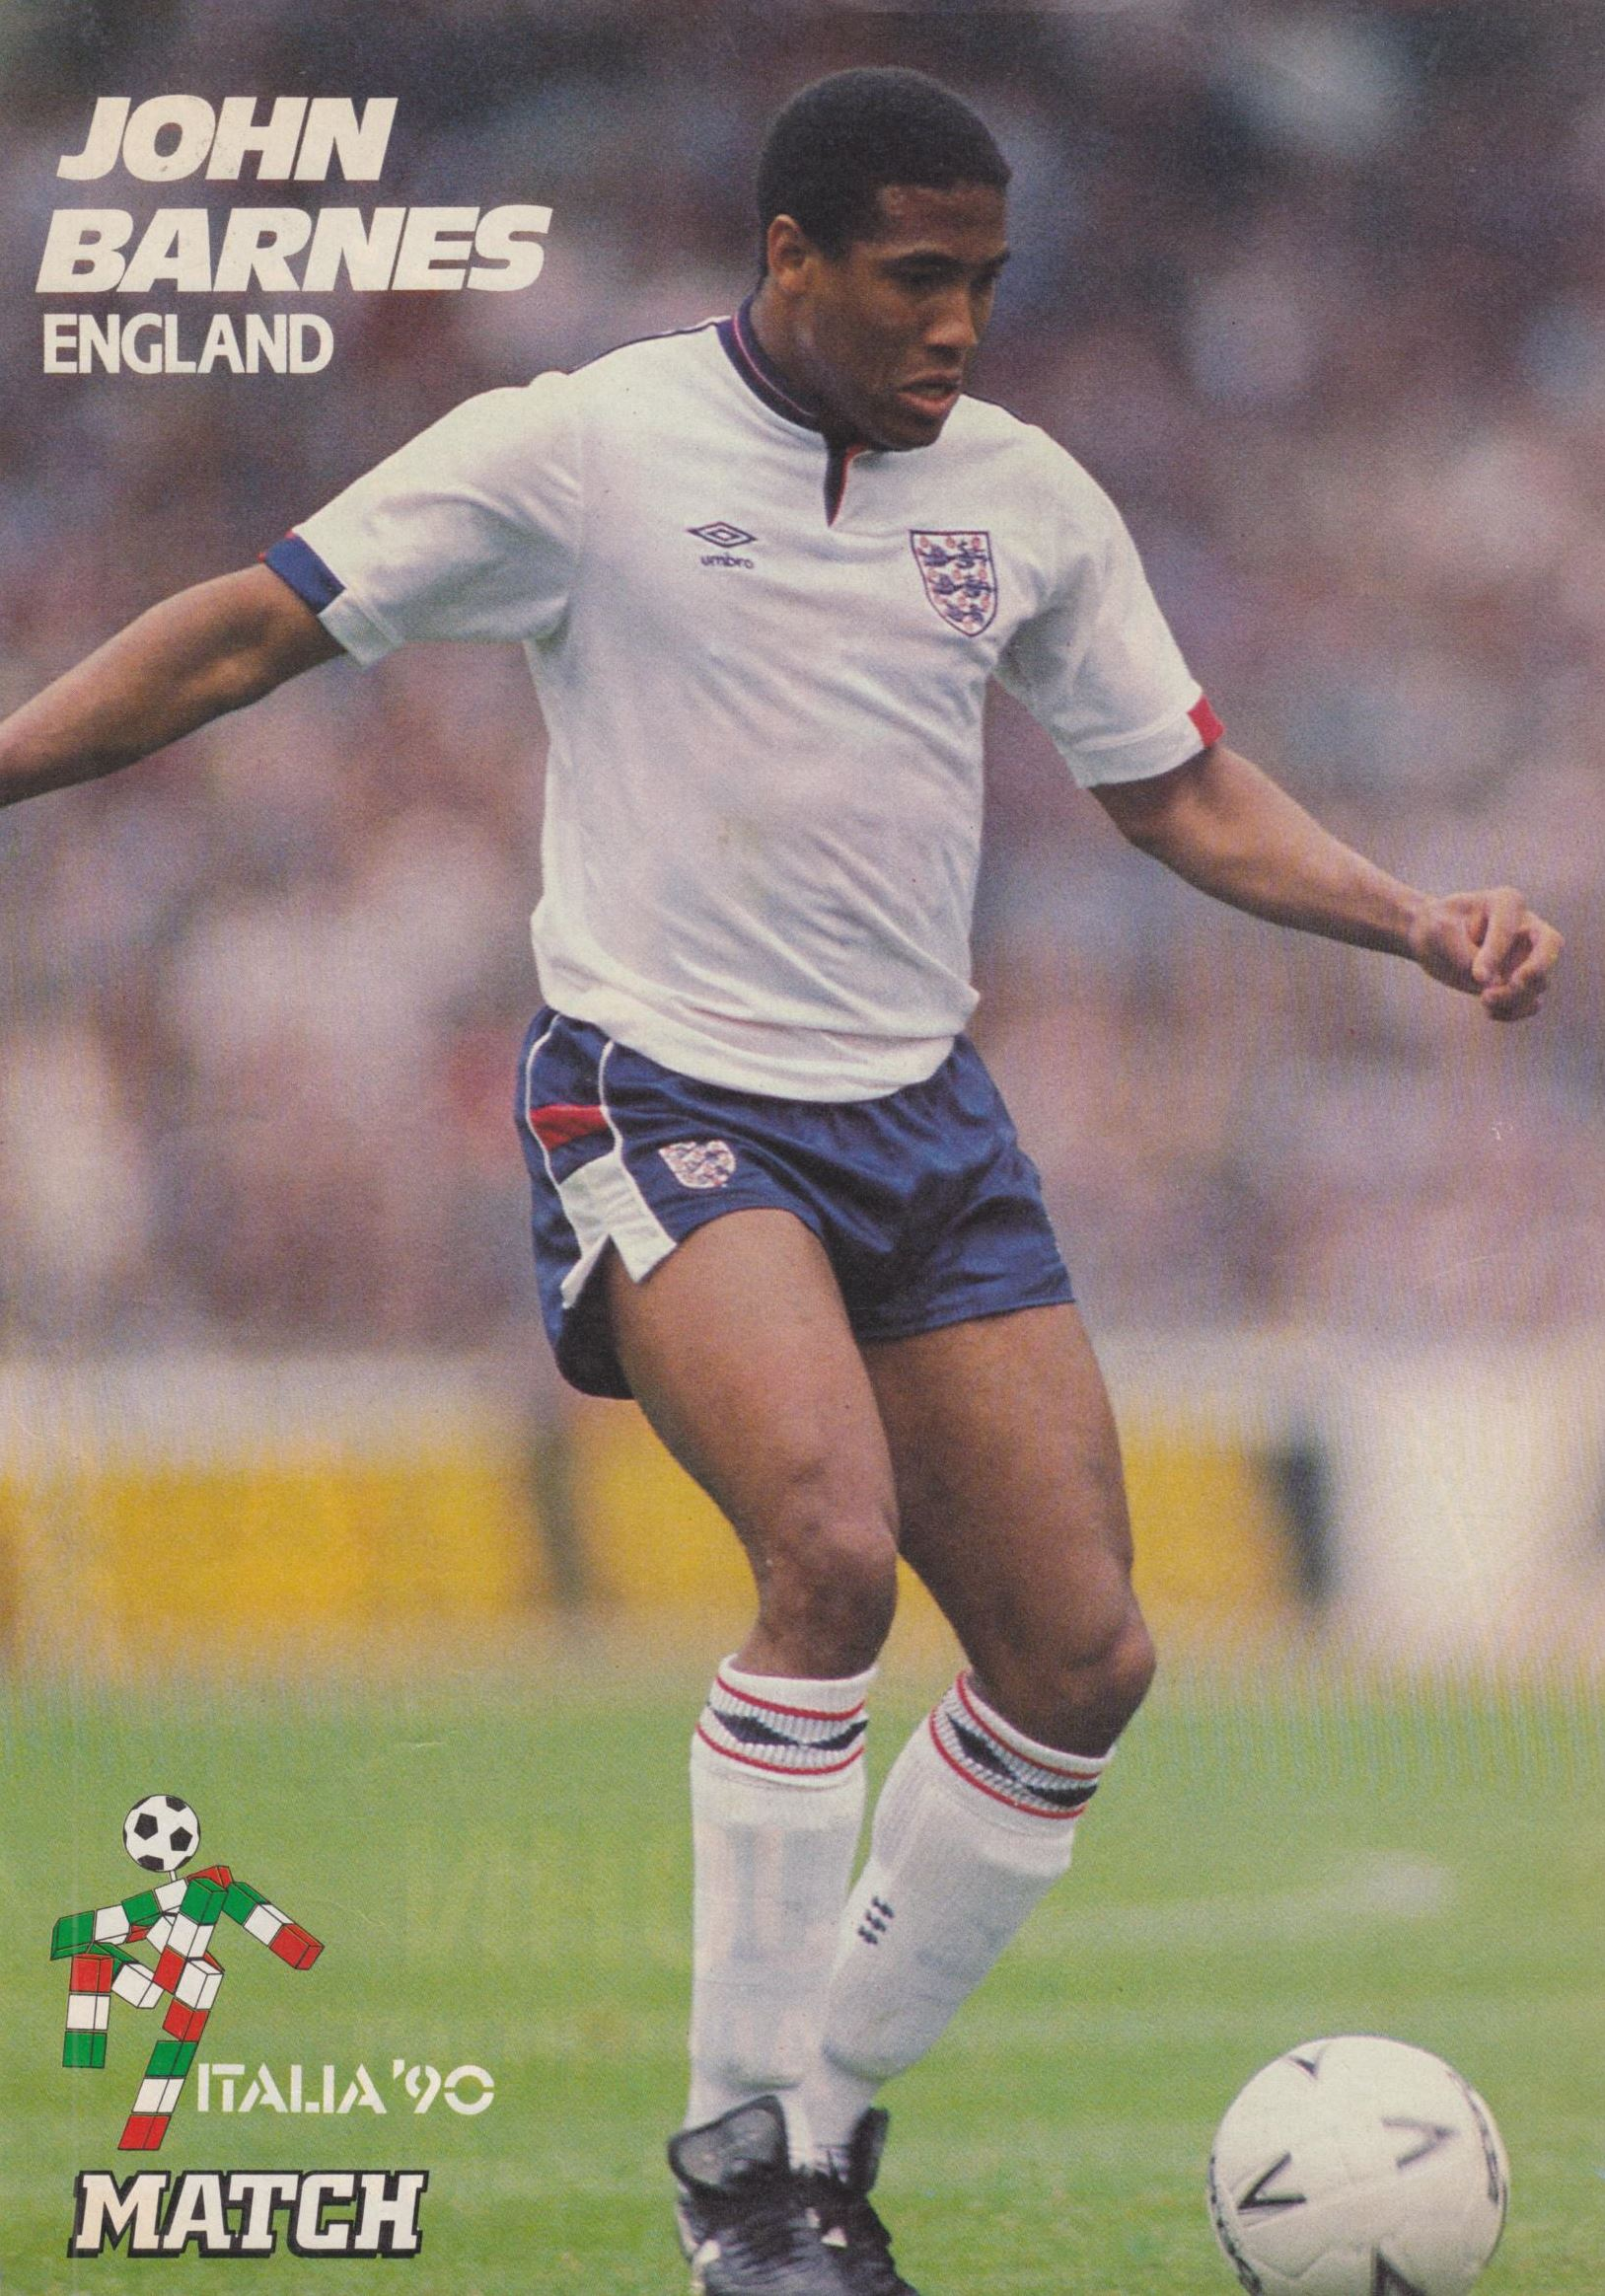 Match poster of England's Barnes - World Cup 1990